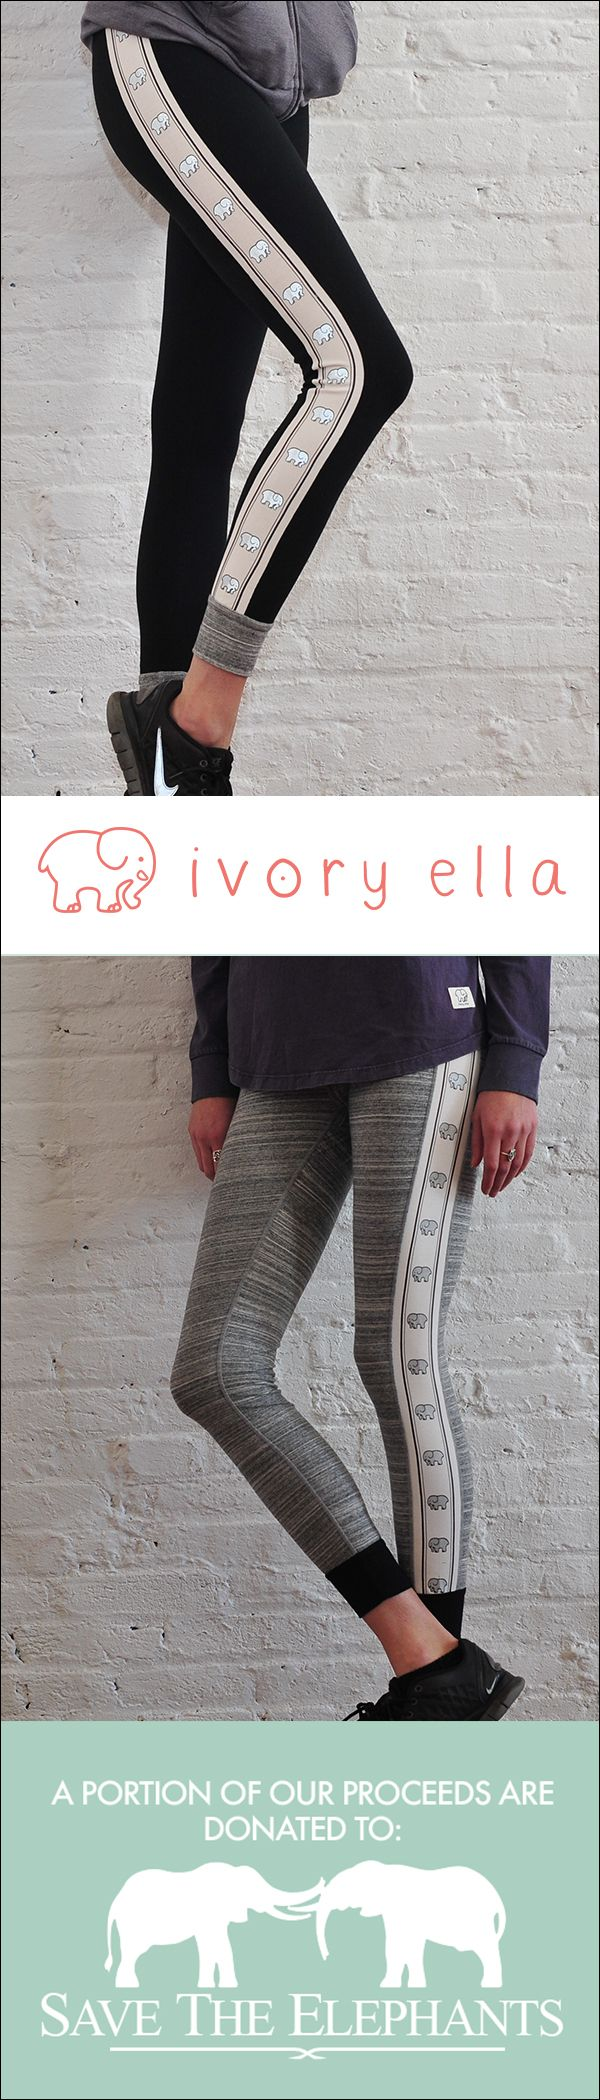 Check out our latest leggings! Every purchase supports Save the Elephants.